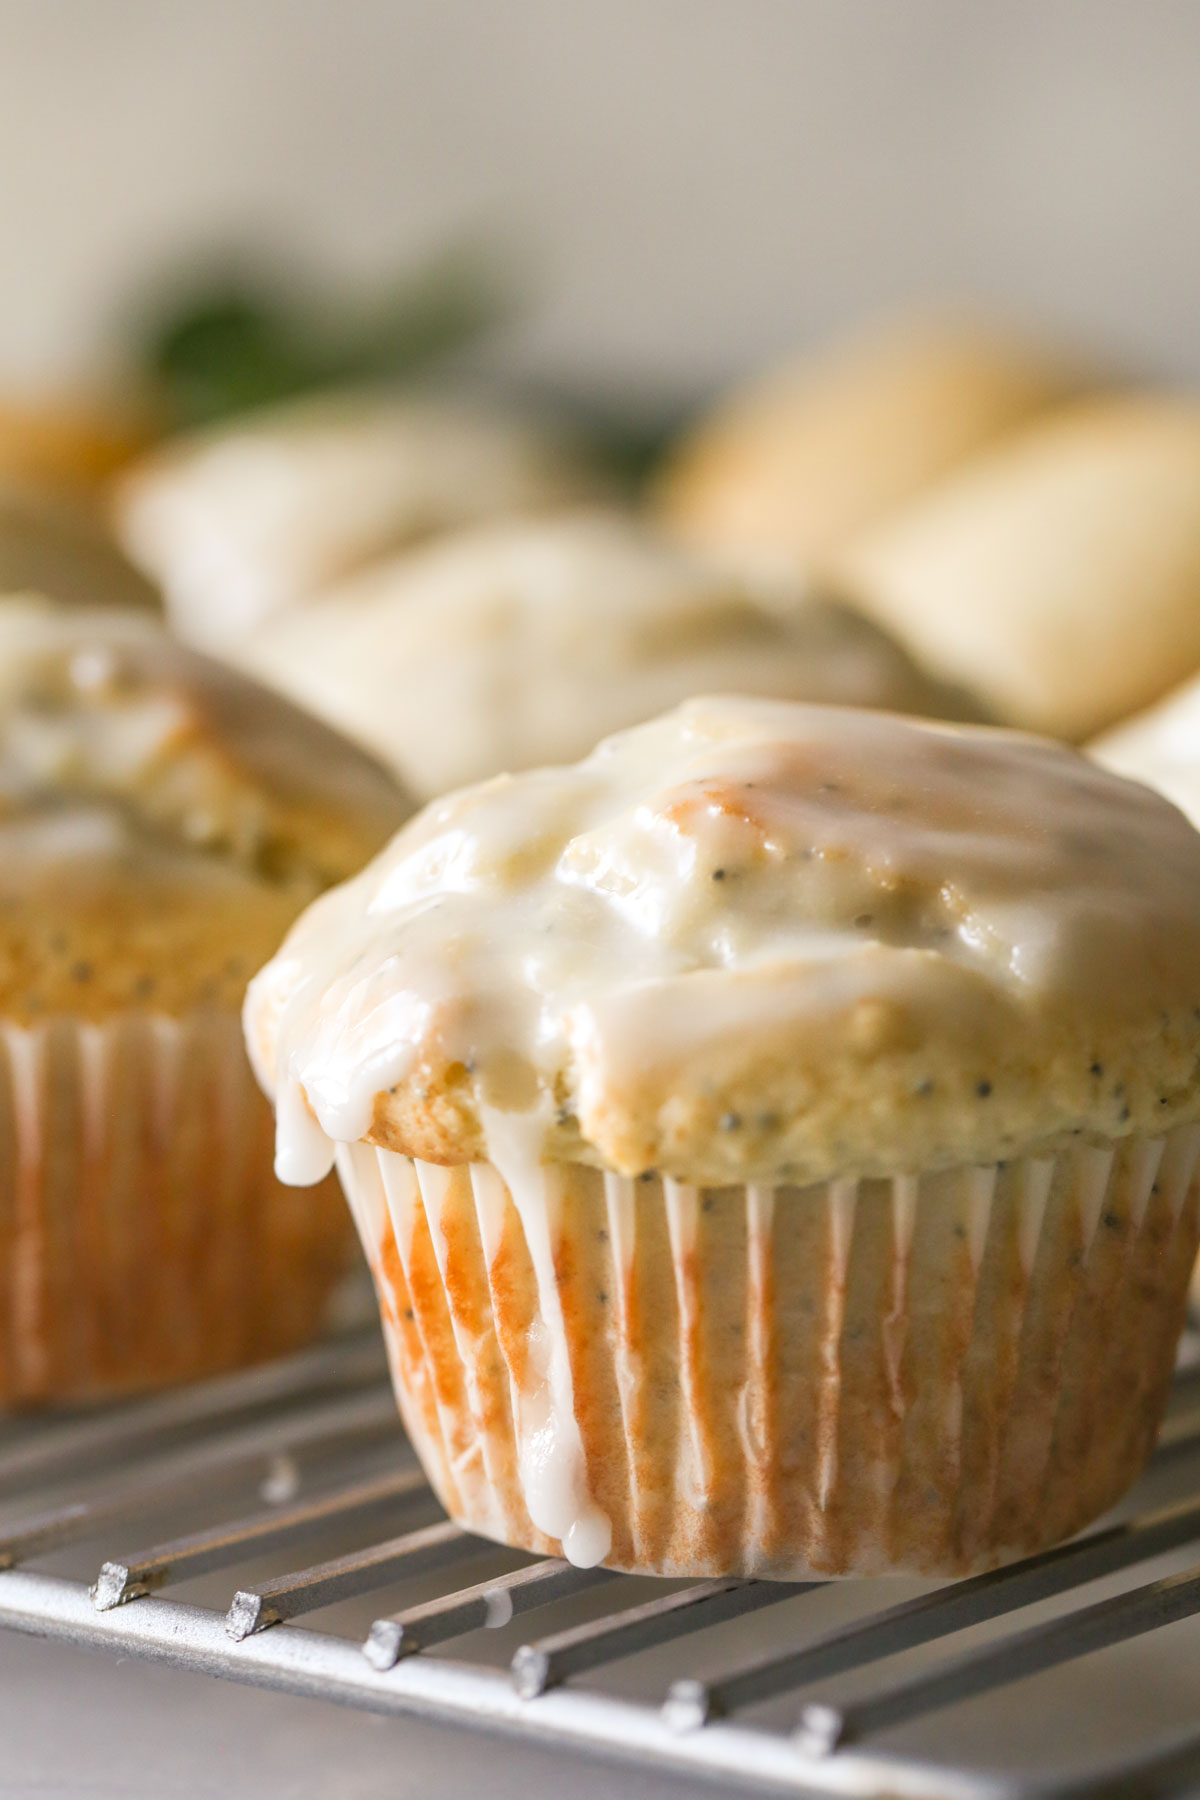 Close up shot of a Glazed Lemon Poppy Seed Muffin on a cooling rack, with more muffins in the background.